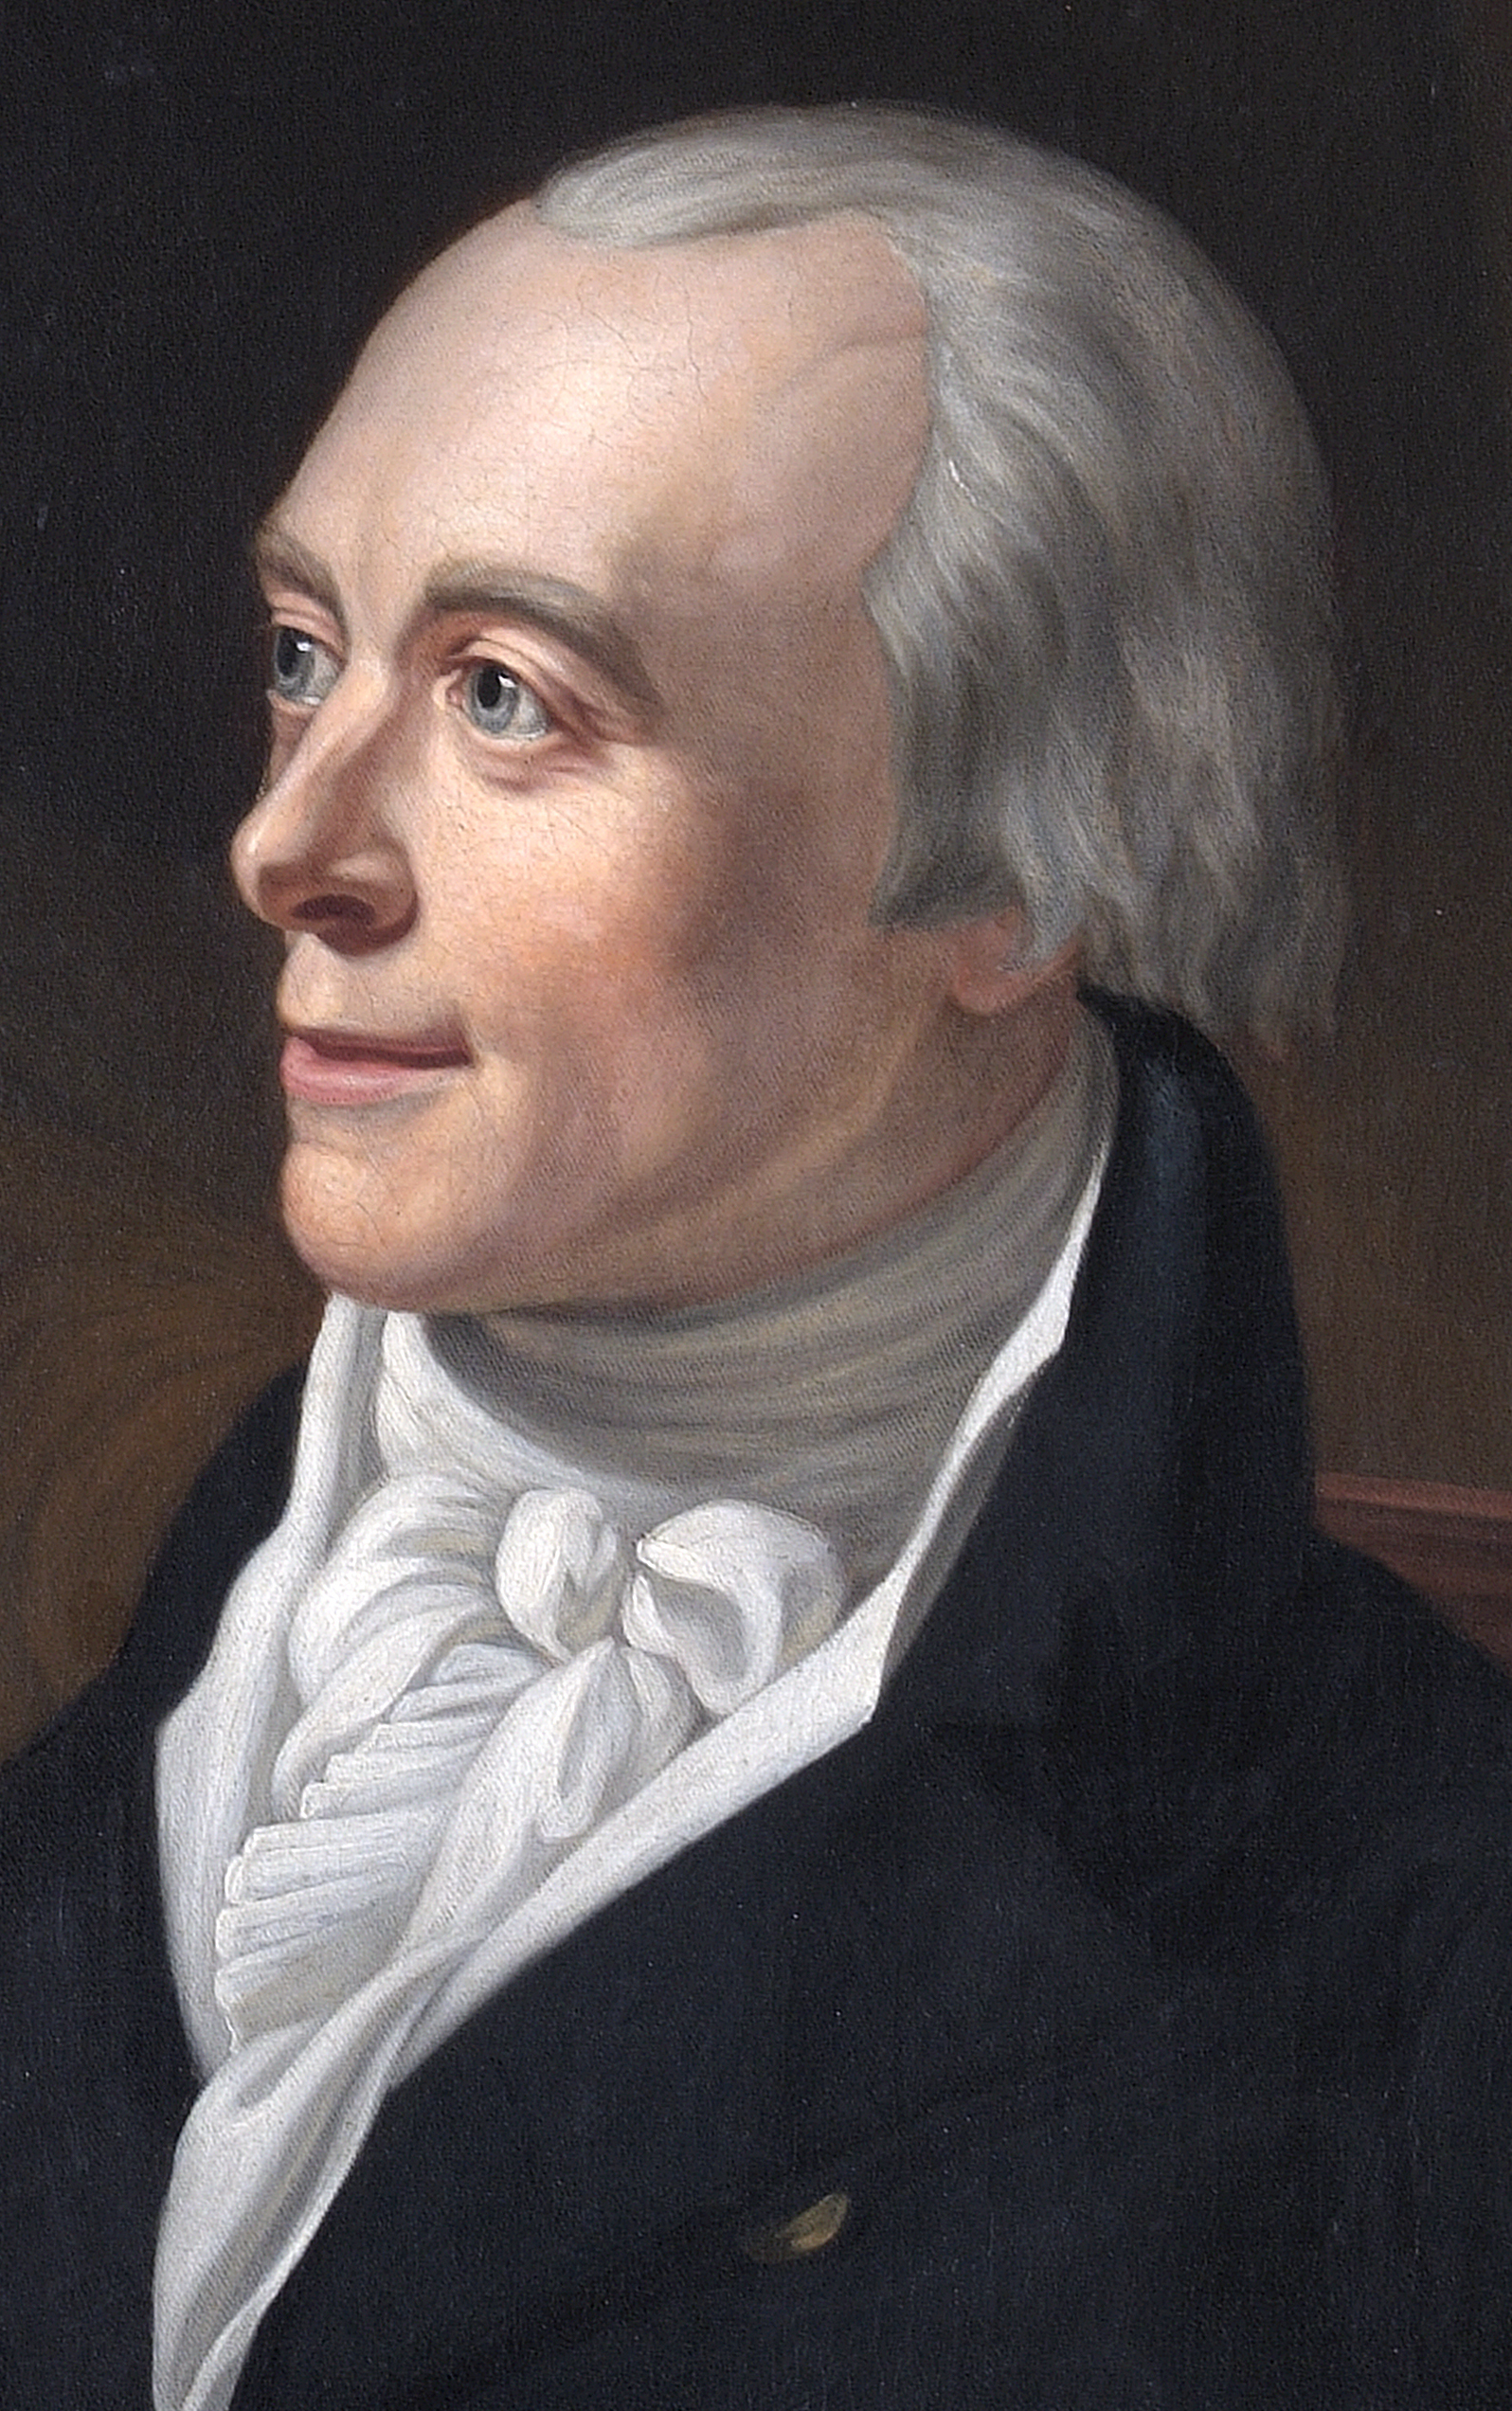 Prime Minister the Hon. Spencer Perceval, seventh son of John Perceval, 2nd Earl of Egmont